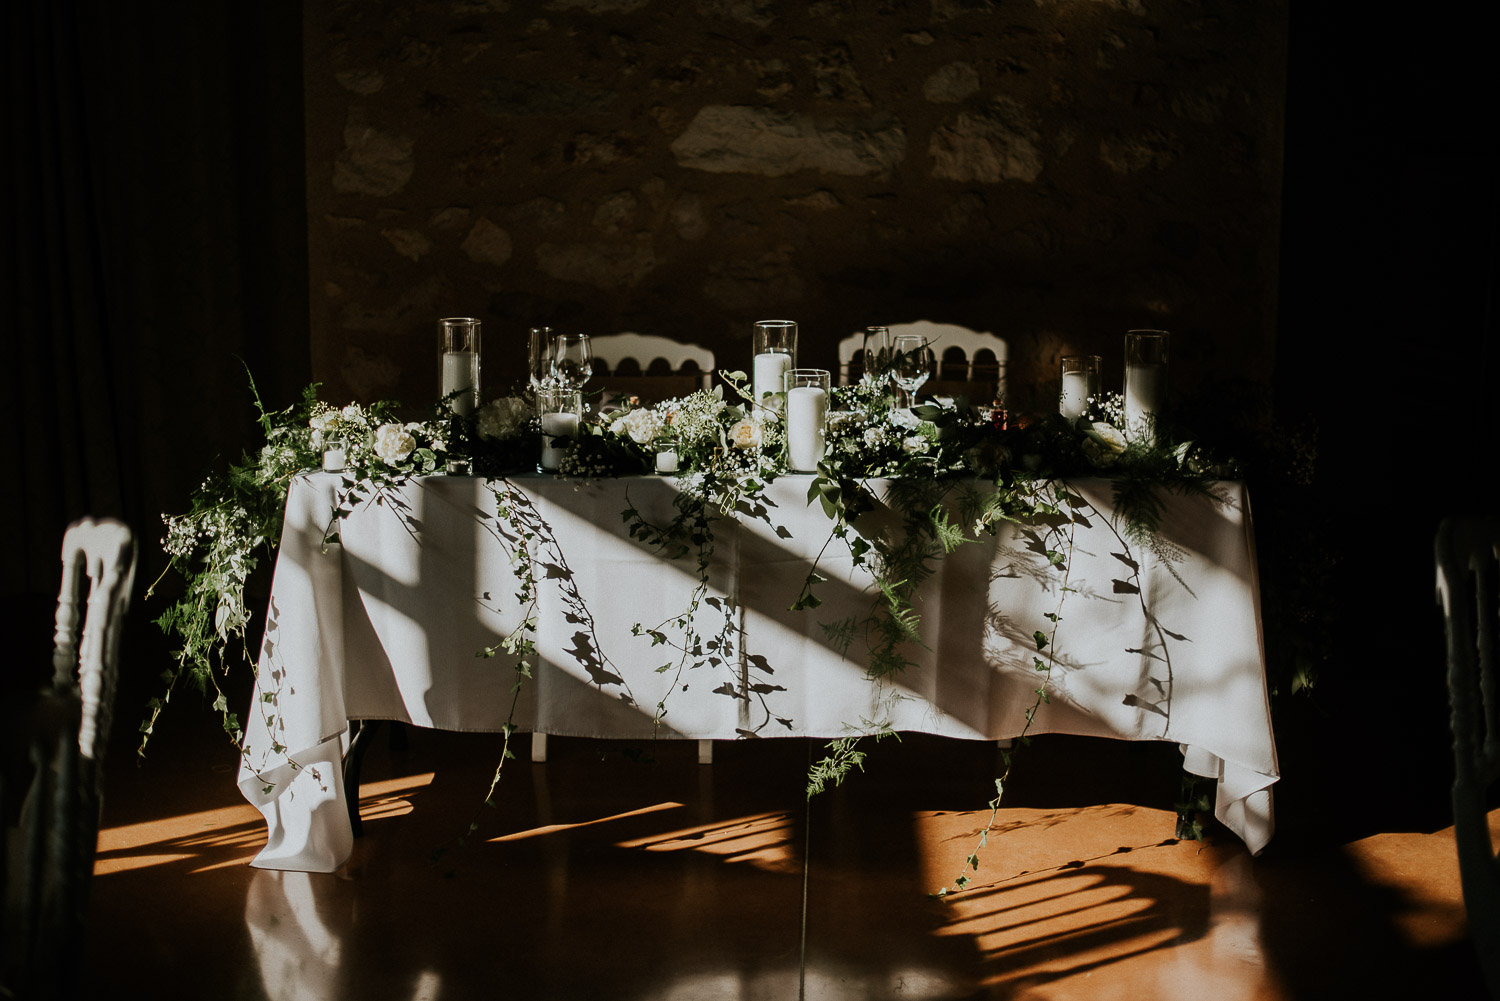 le_castelet_castres_tarn_gascony_south_west_france_family_wedding_katy_webb_photography_UK82